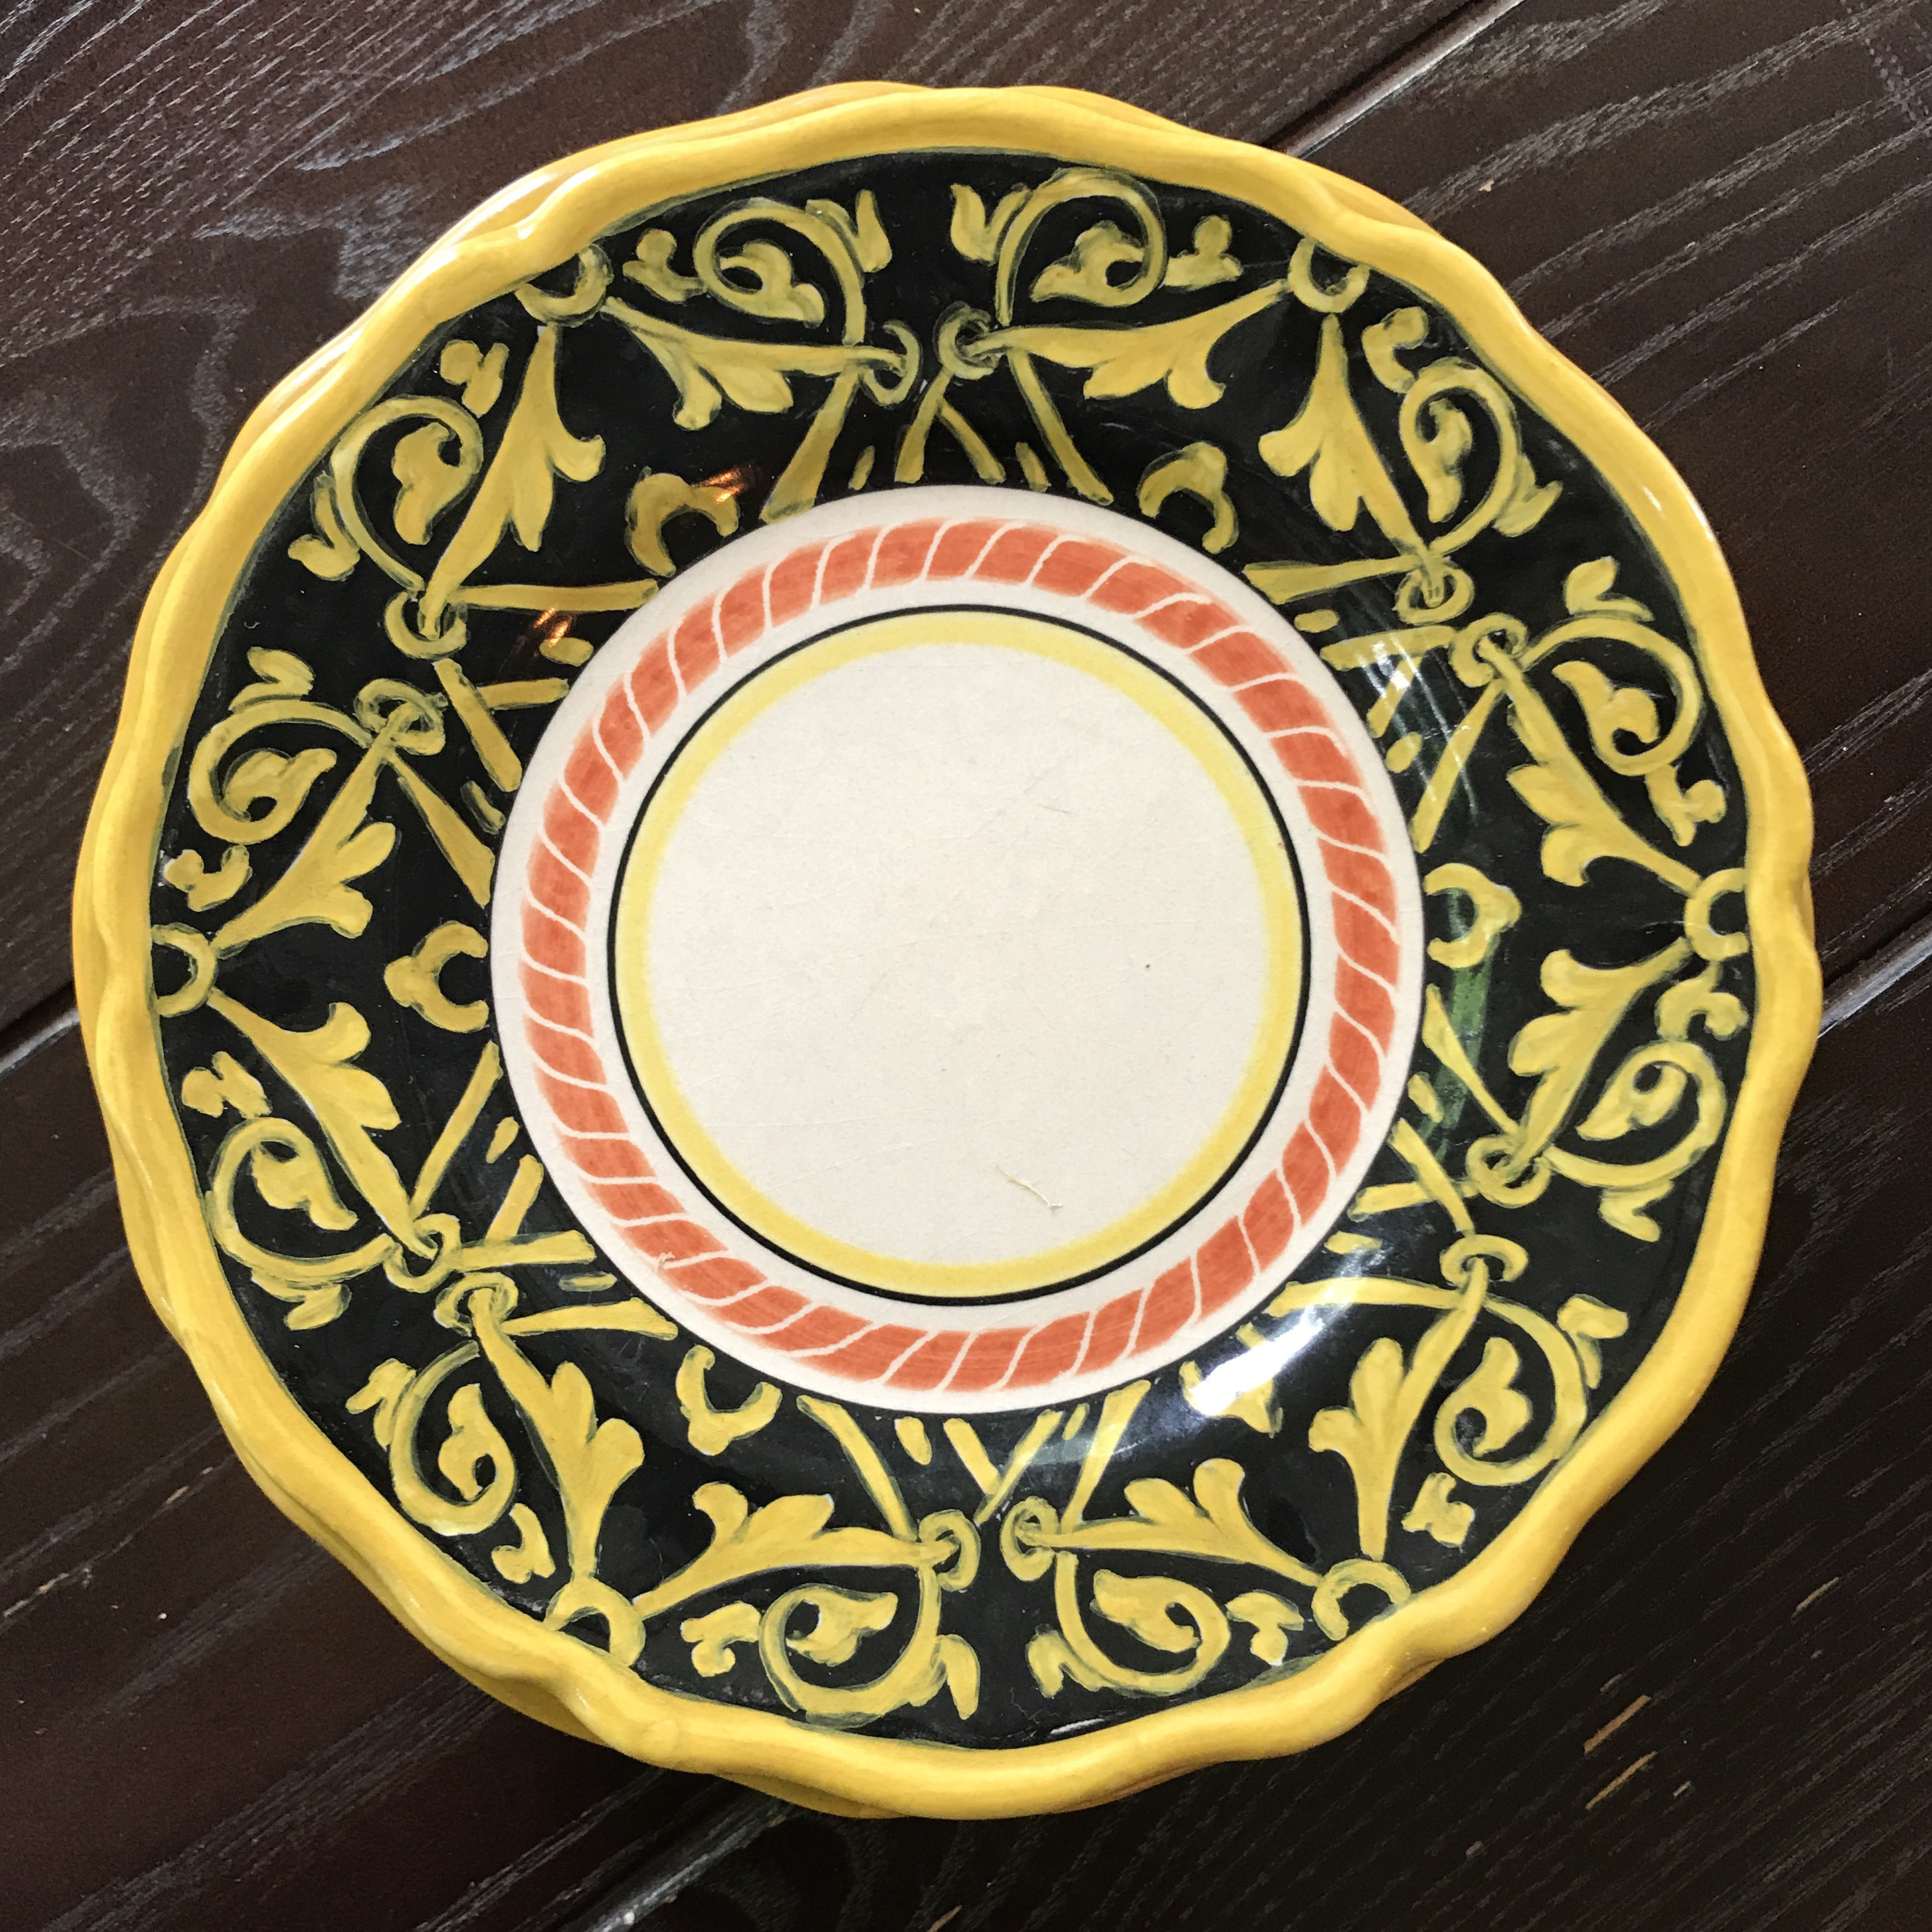 Handpainted Italian Versace Dessert Plates - Set of 6 - Image 6 of 9 & Handpainted Italian Versace Dessert Plates - Set of 6 | Chairish